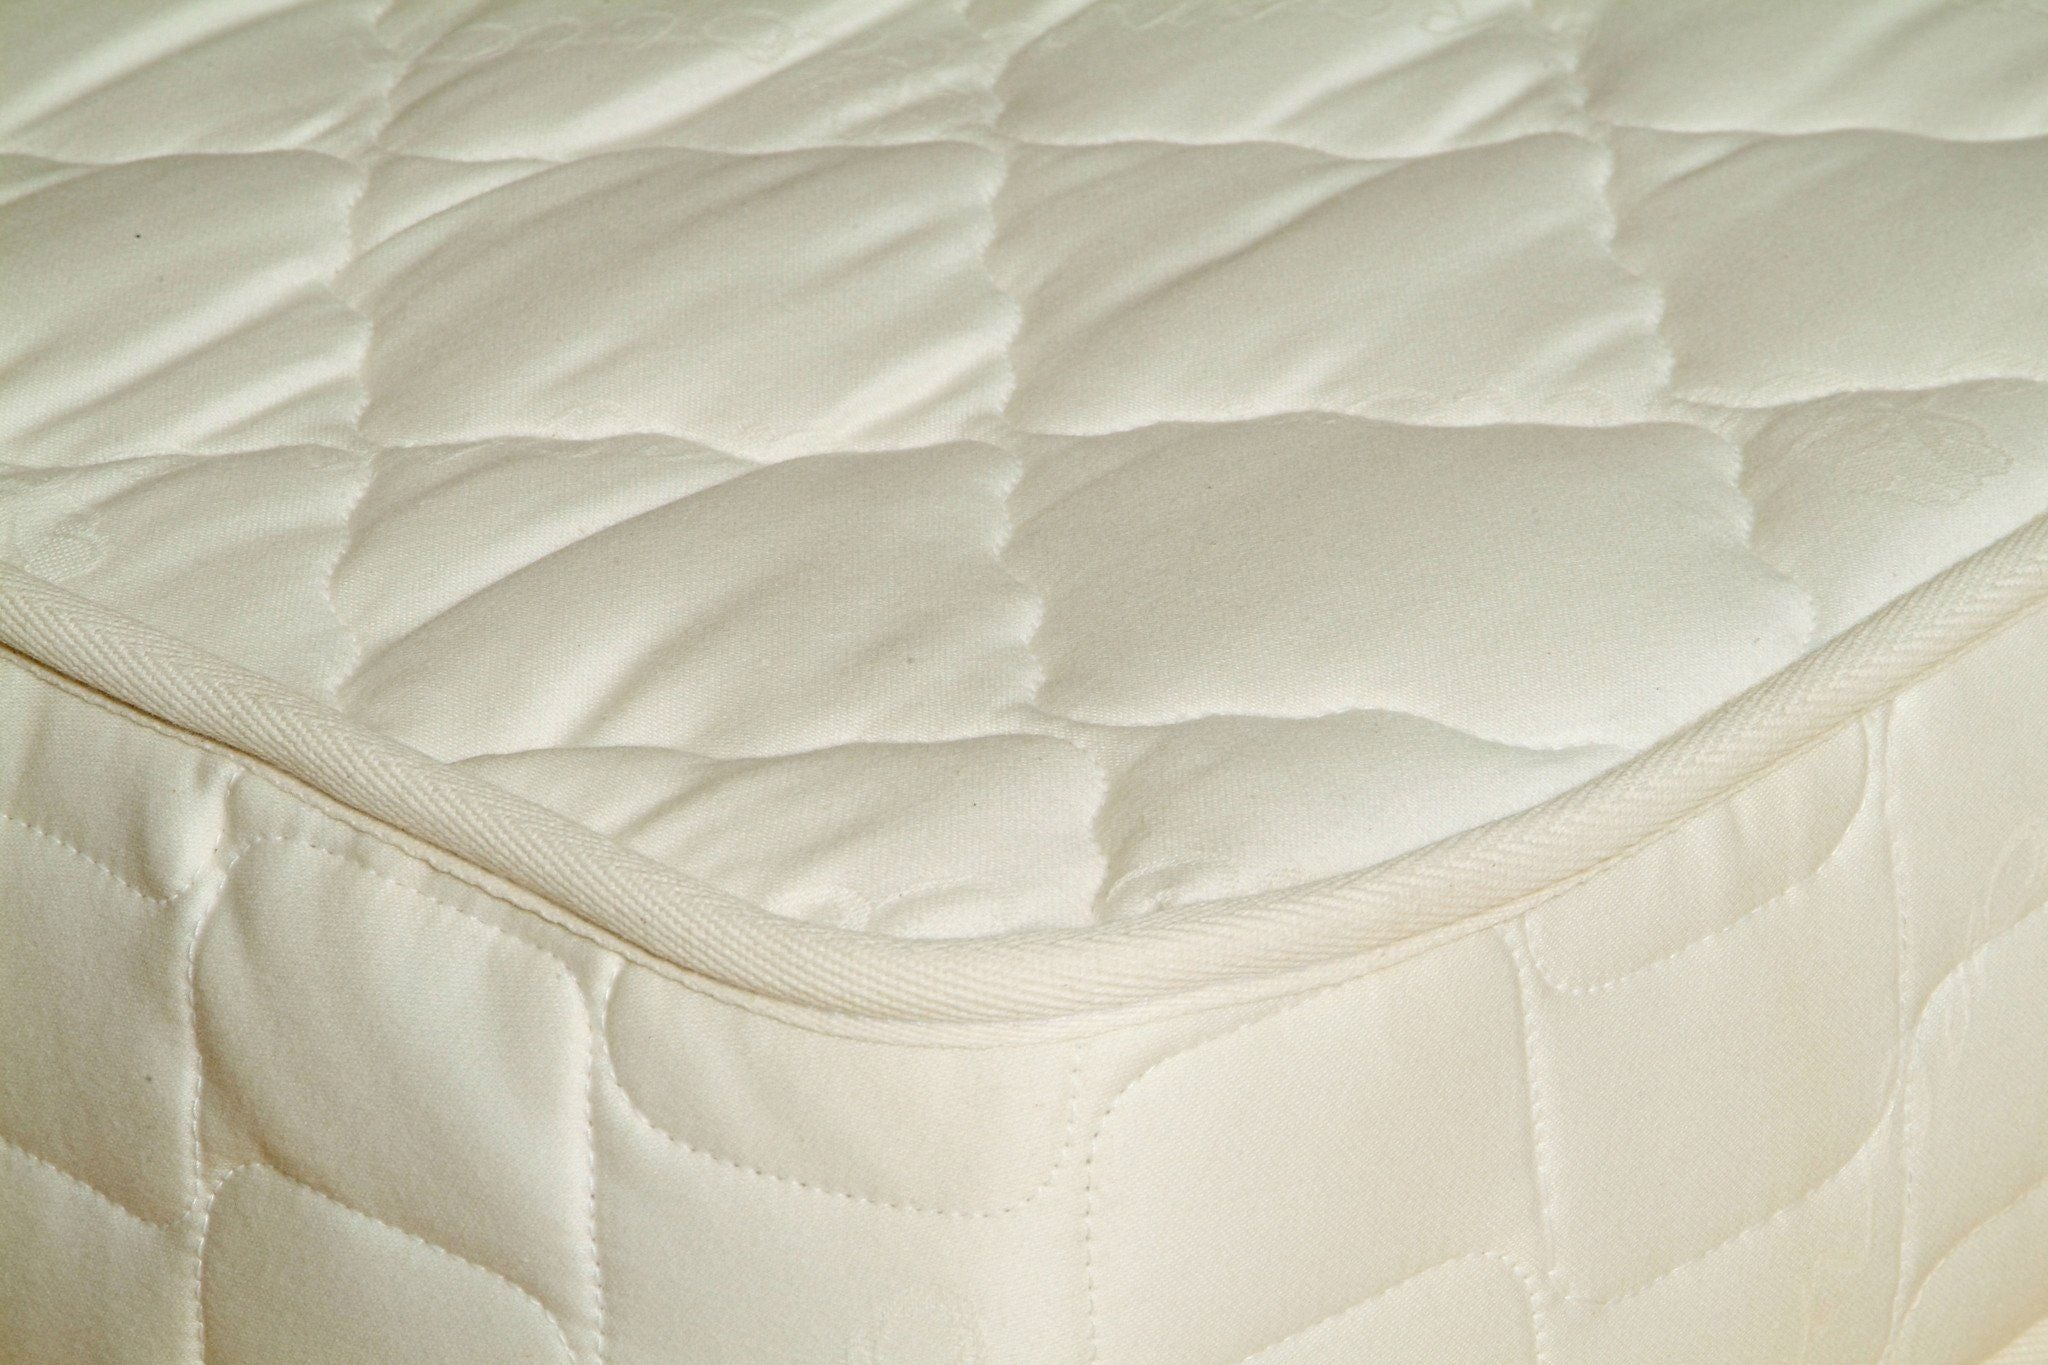 Holy Lamb Organics Spring Crib Mattress